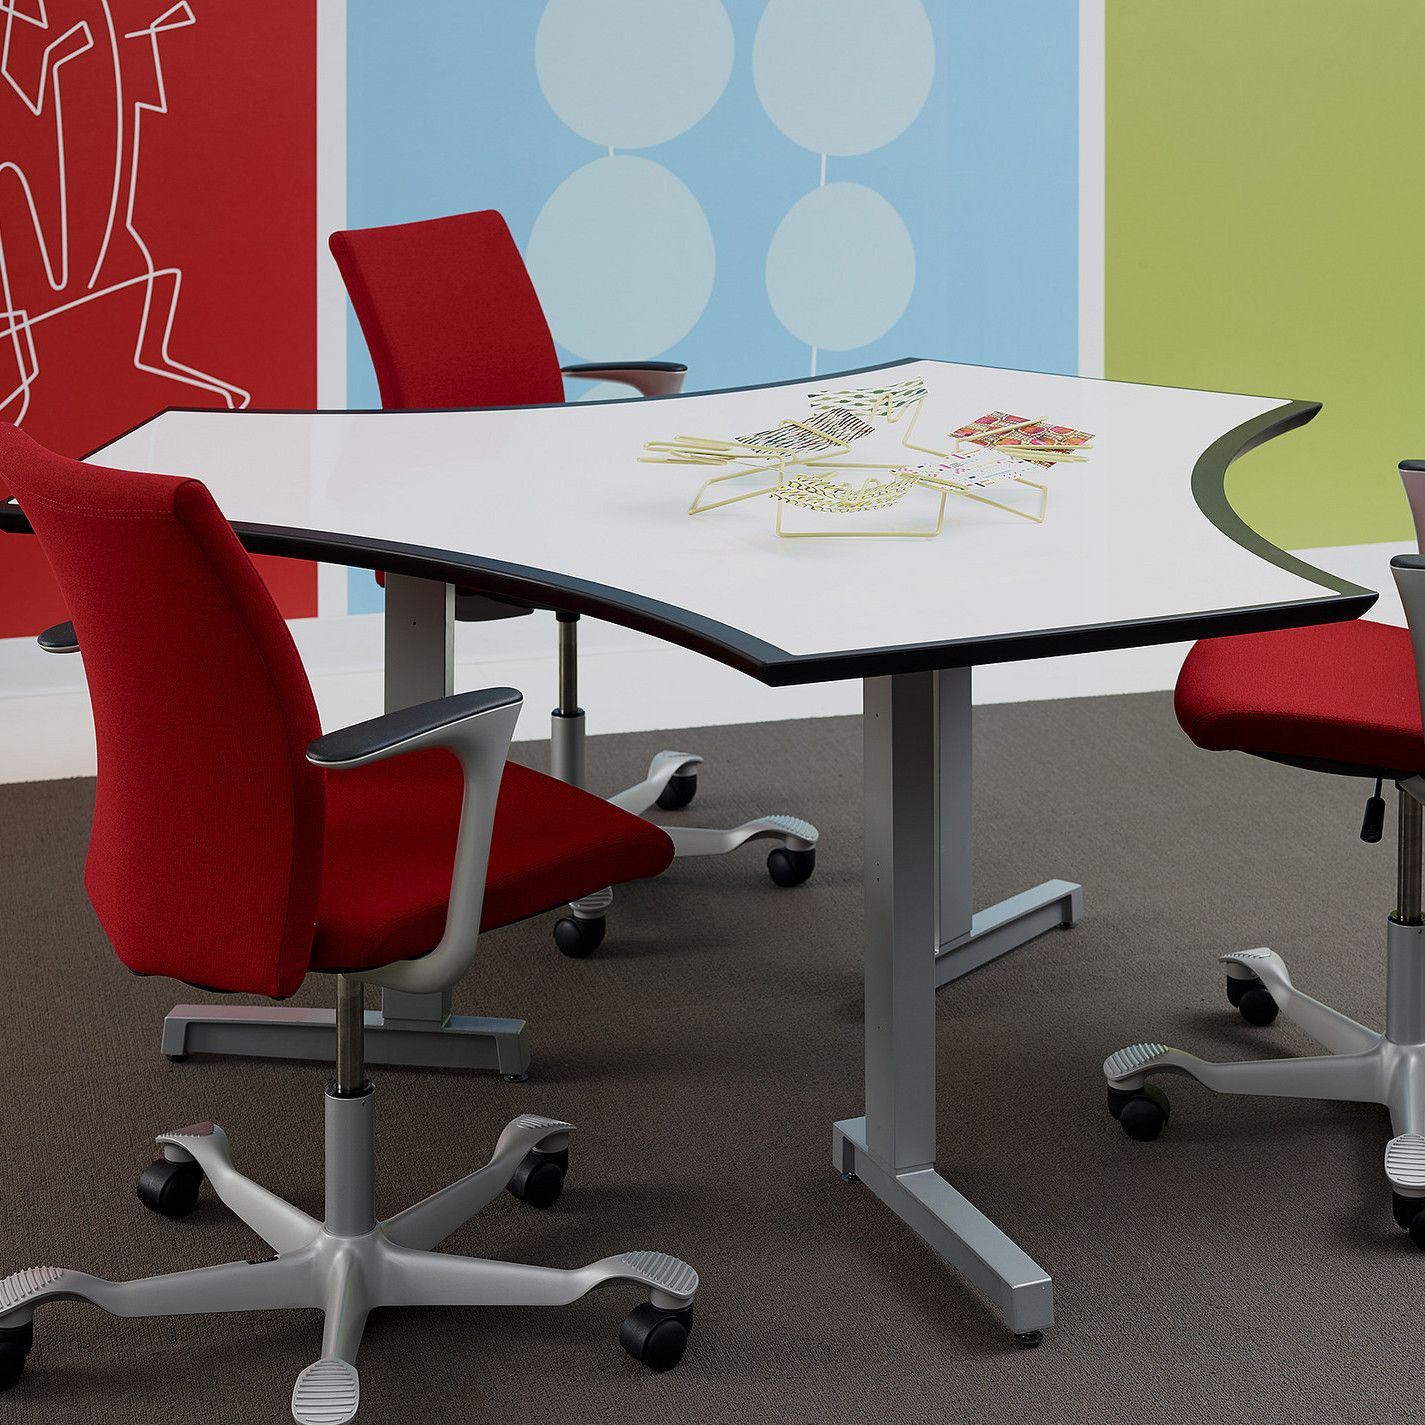 Customer Image Zoomed Training tables, Red furniture, Table